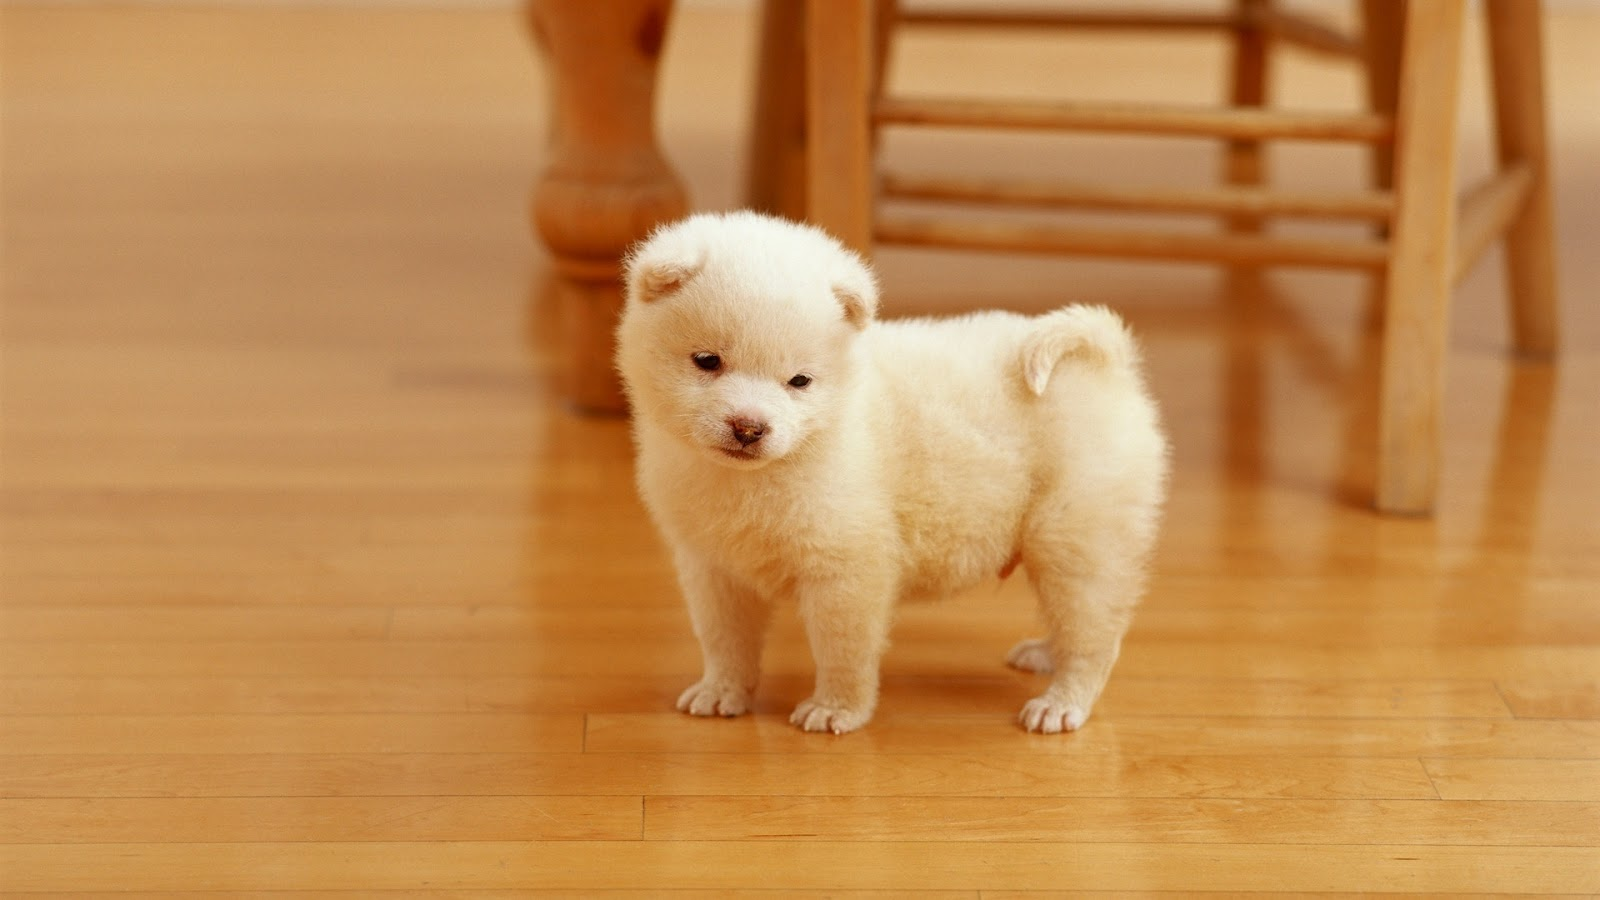 Cute White Puppy Desktop Wallpaper What a cute looking puppy desktop 1600x900